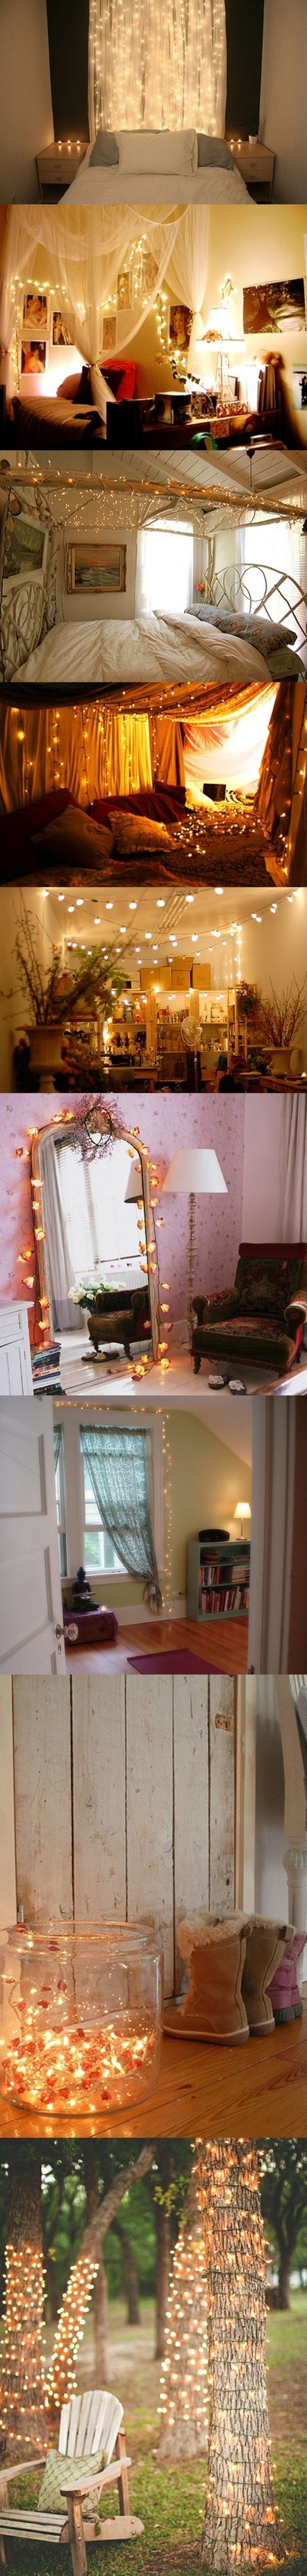 best images about home decor on pinterest